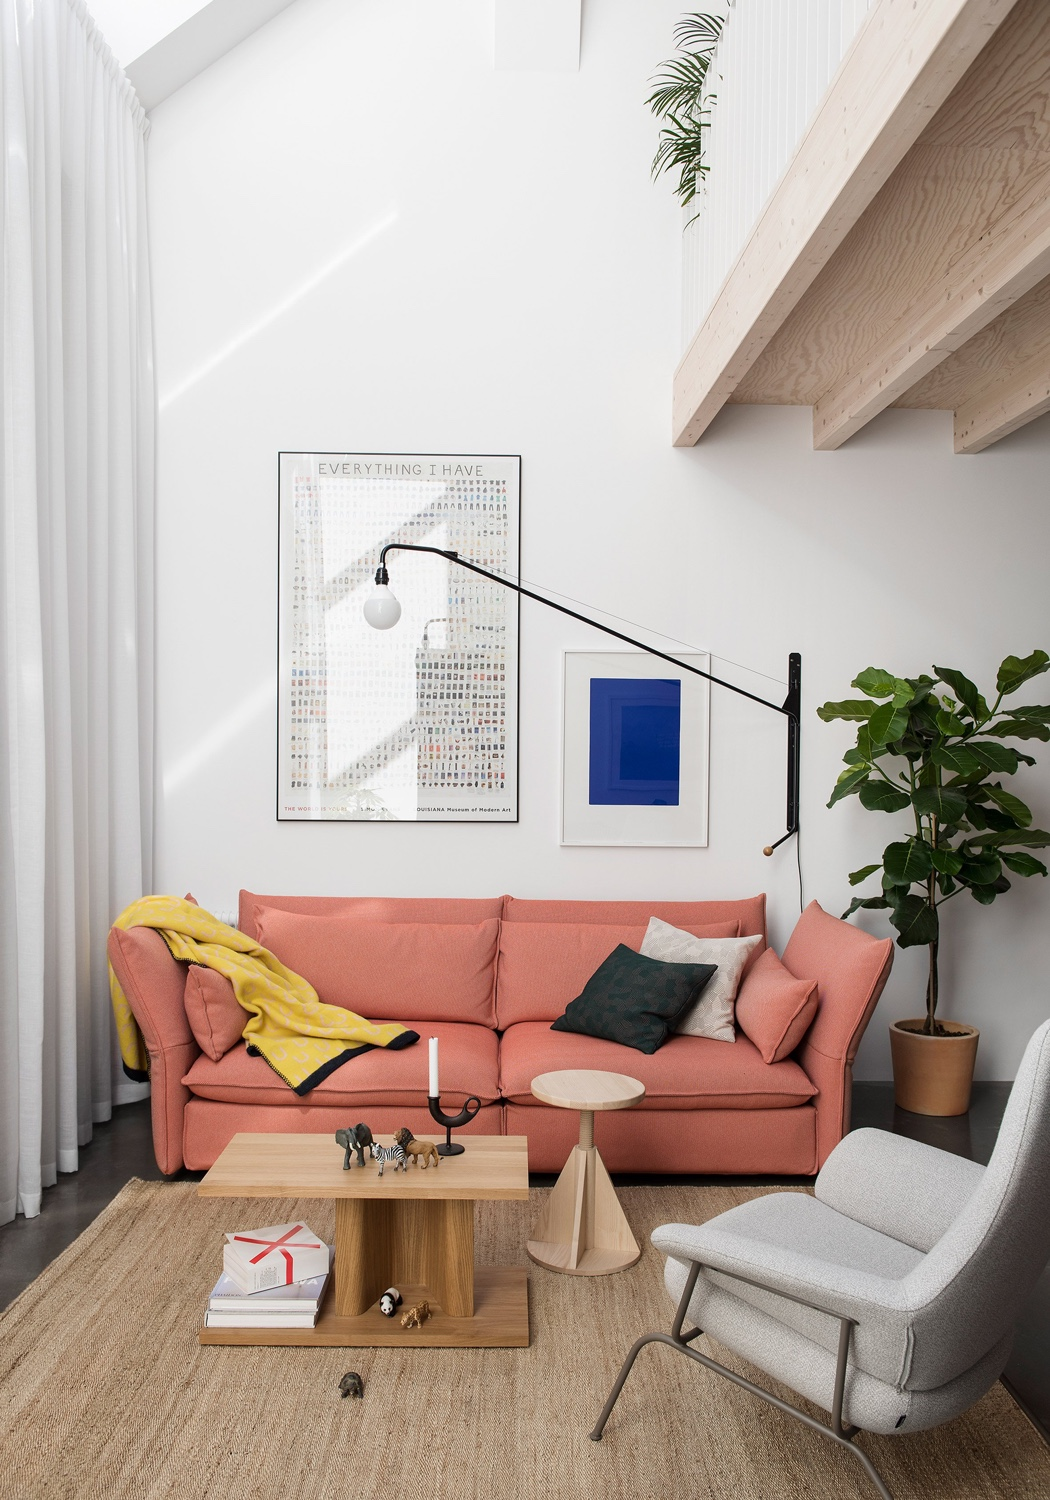 A cosy corner in a Stockholm residence designed by Malmö-based architectural studio Förstberg Ling. Photo by Erik Lefvander via Dezeen.